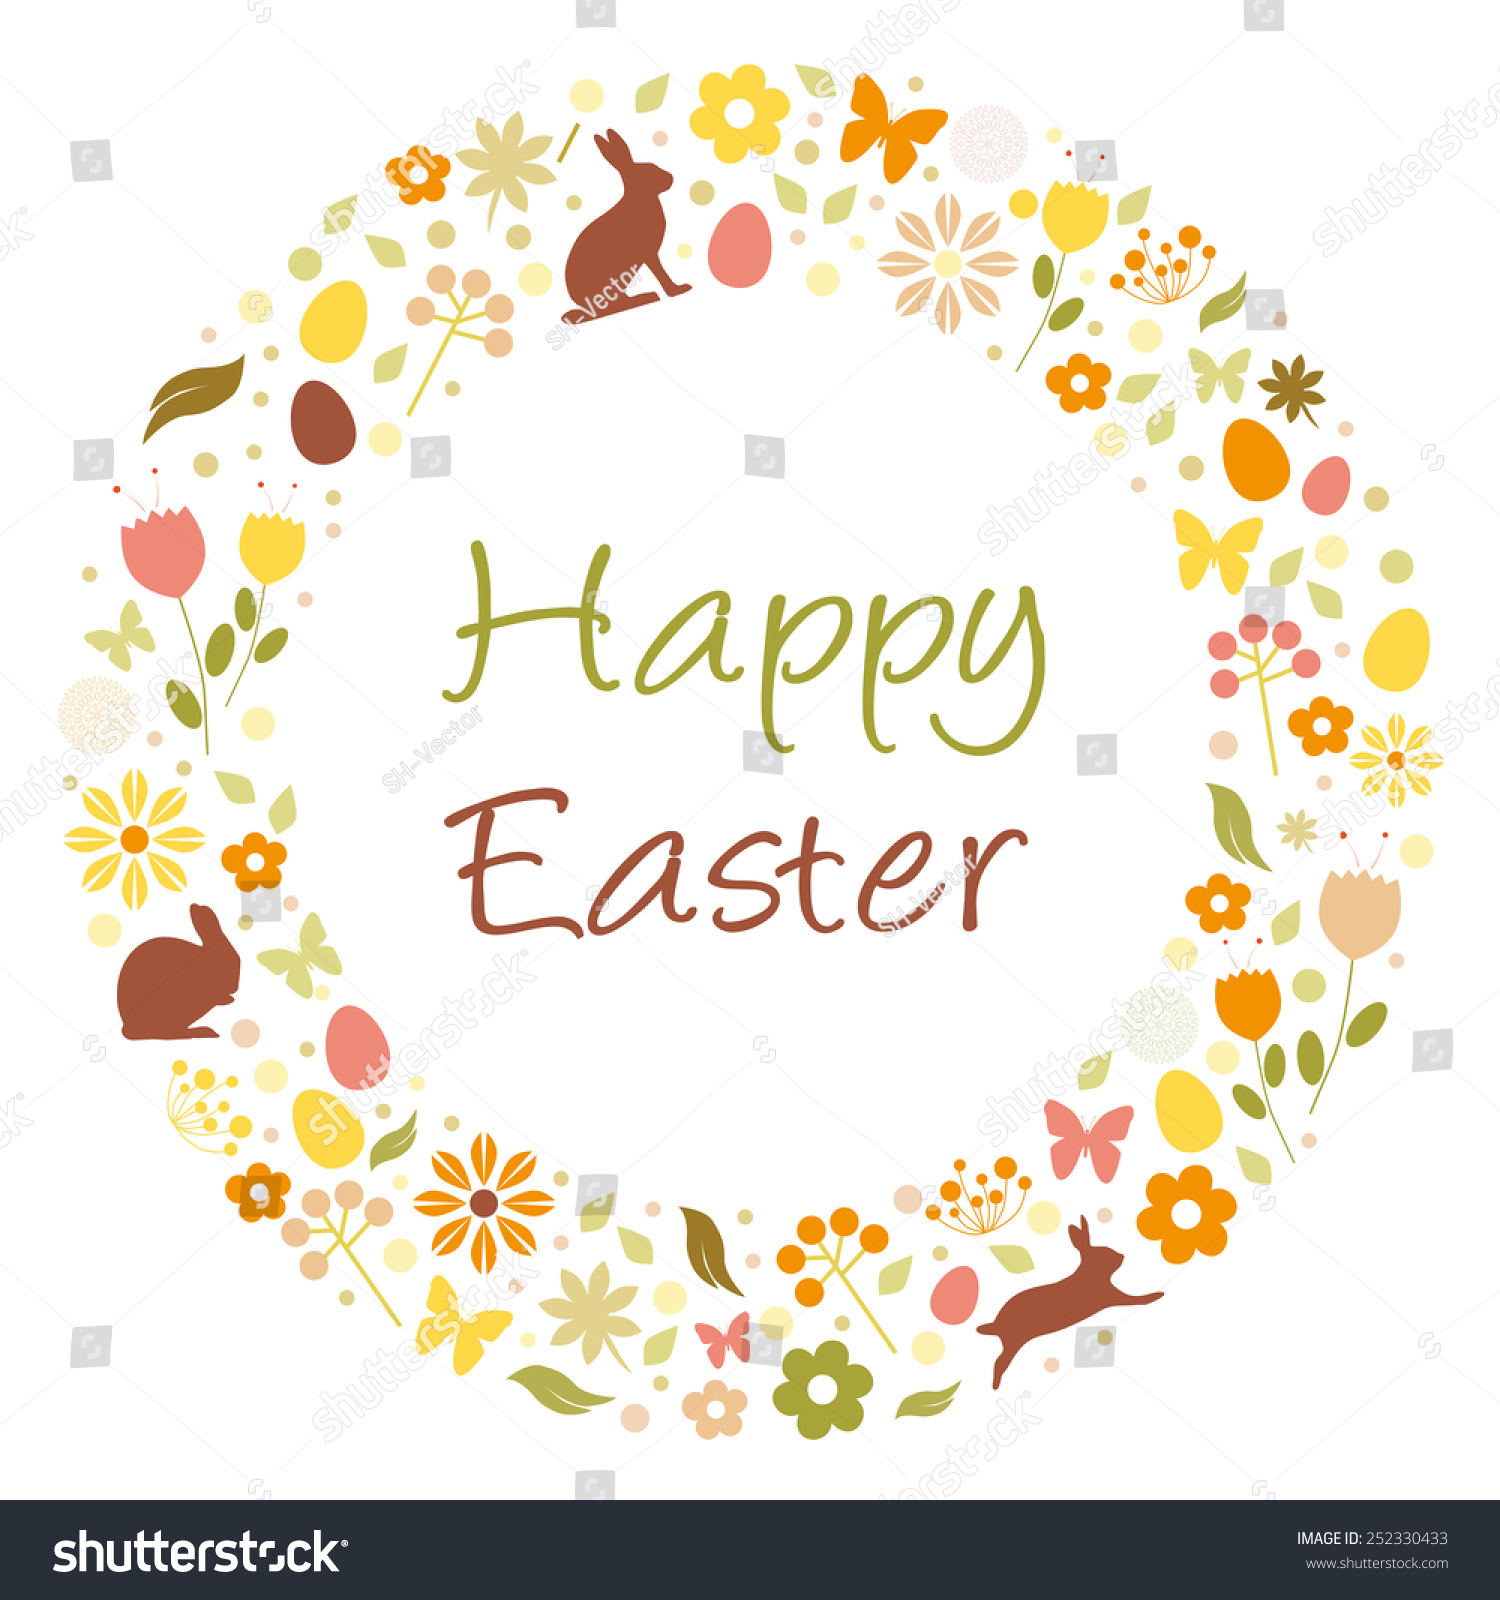 Happy Easter Stock Vector Illustration 252330433 ...